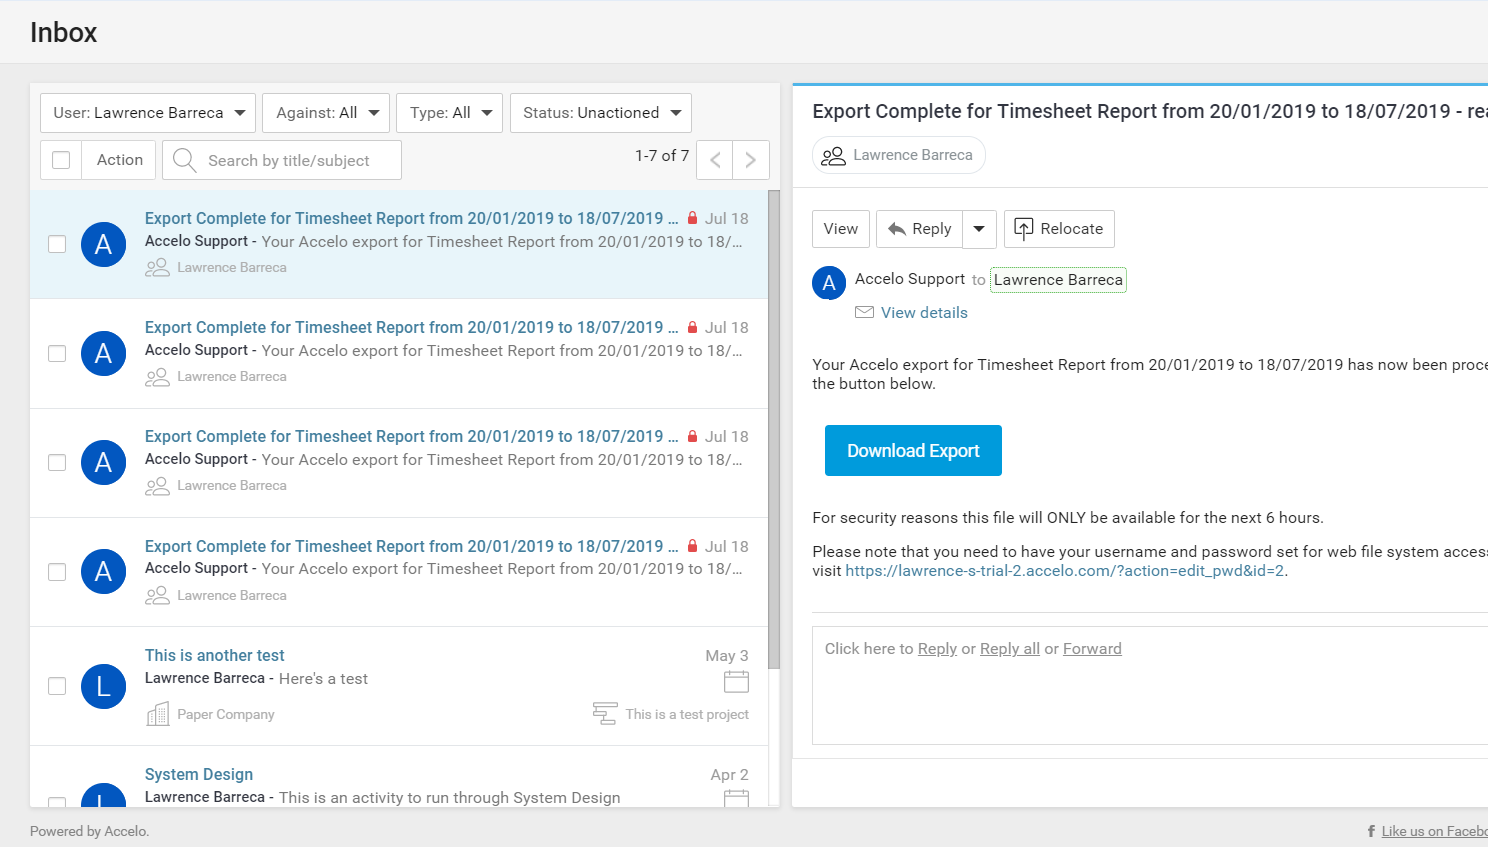 Accelo's project collaboration software for sharing a unified inbox